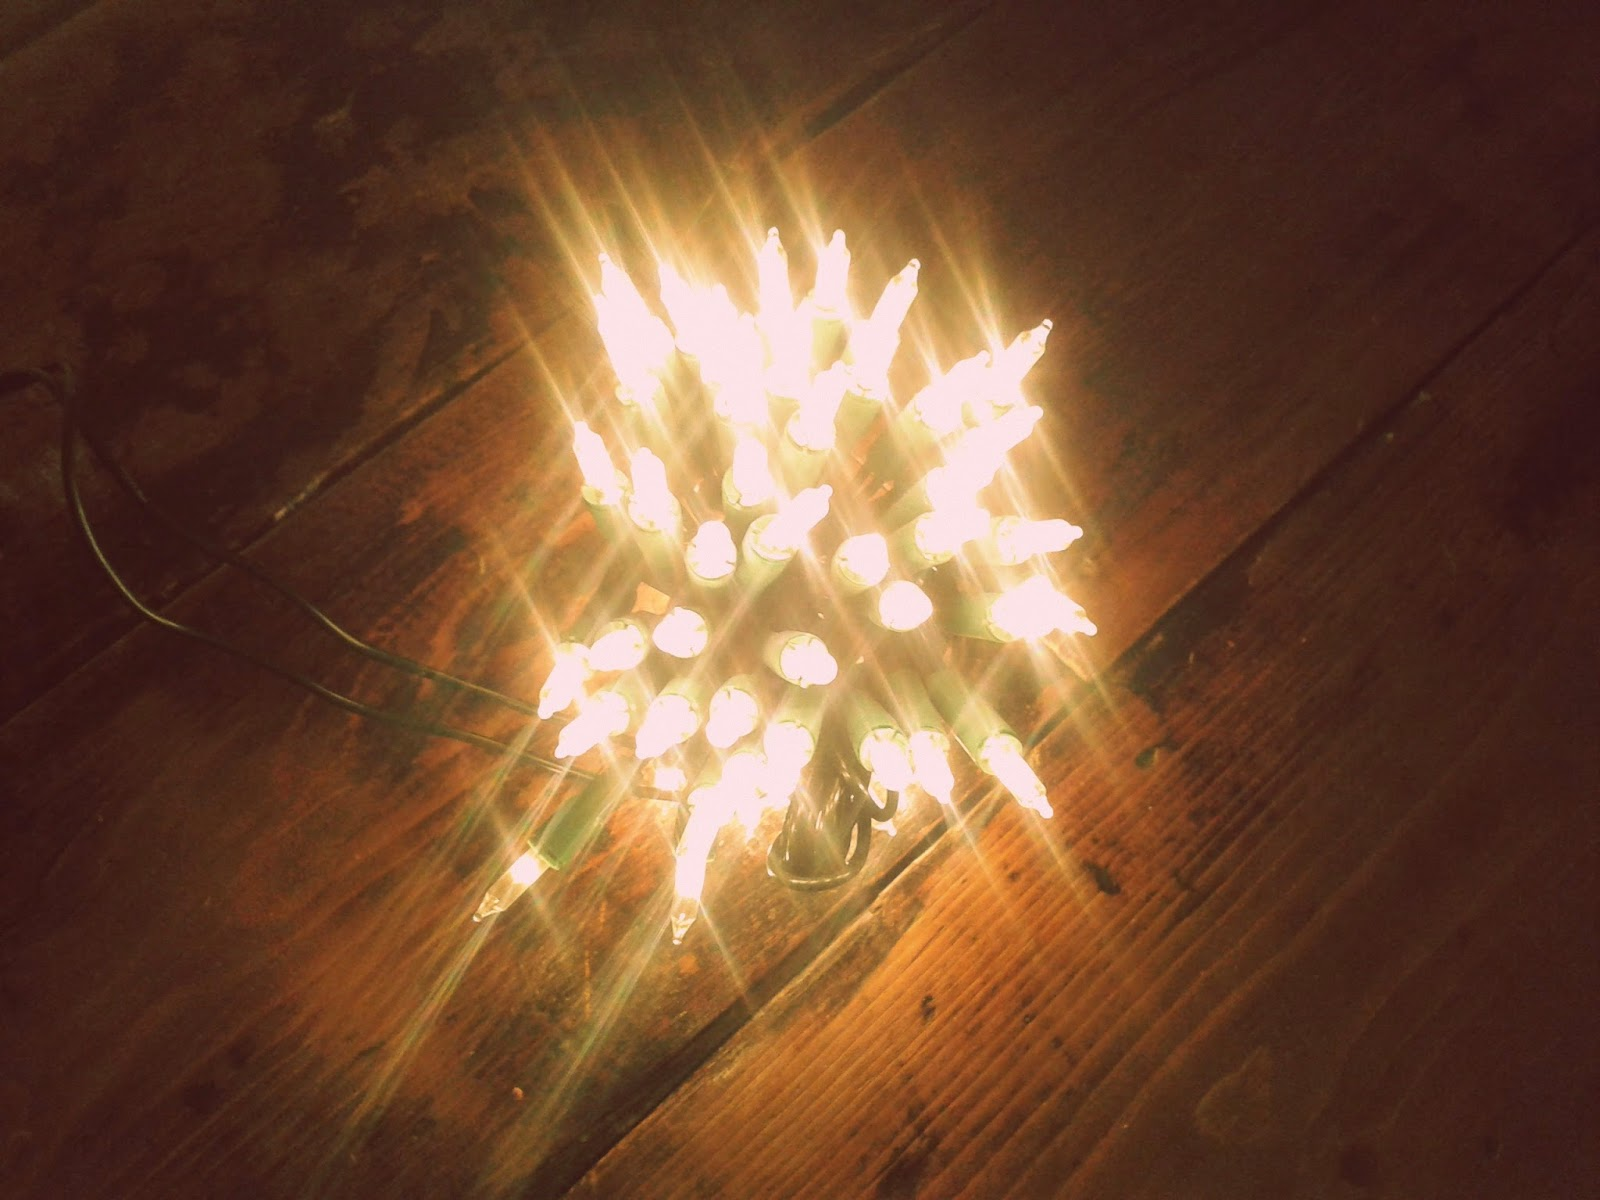 Project 365 #49 day 337 - Fairy lights // 76sunflowers